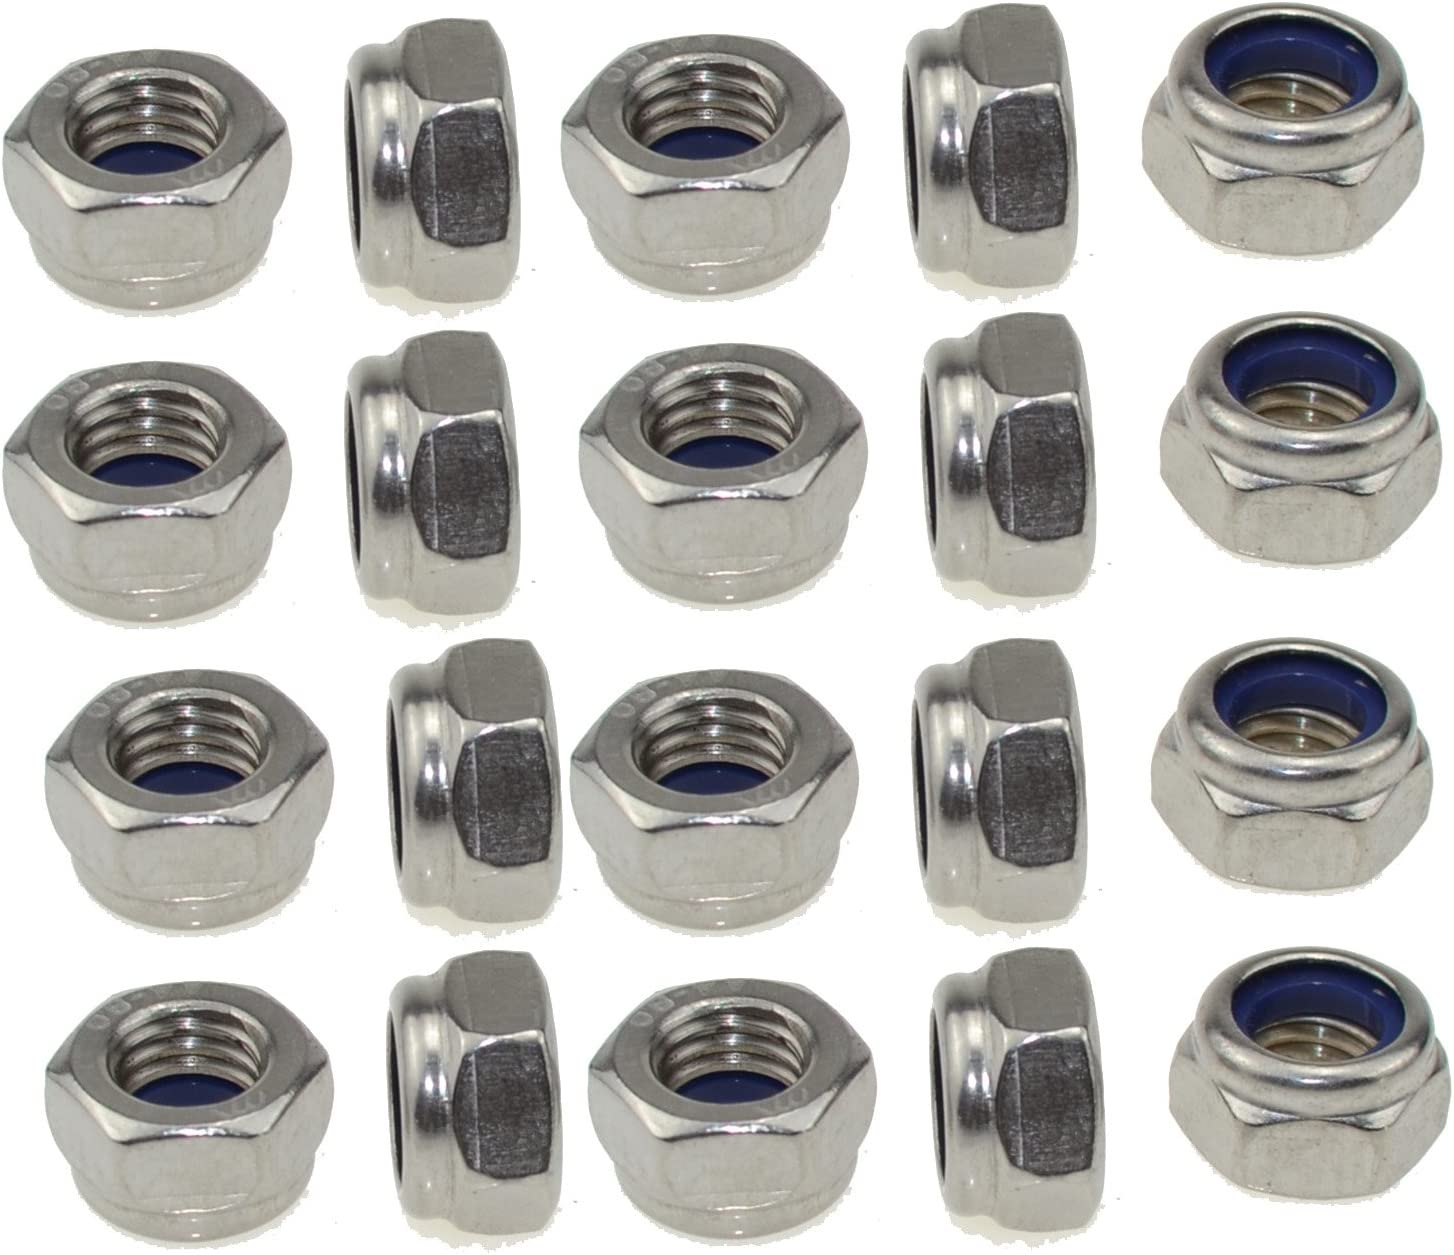 uxcell M8x1.25mm 304 Stainless Steel Nylock Nylon Insert Hex Lock Nuts 25pcs